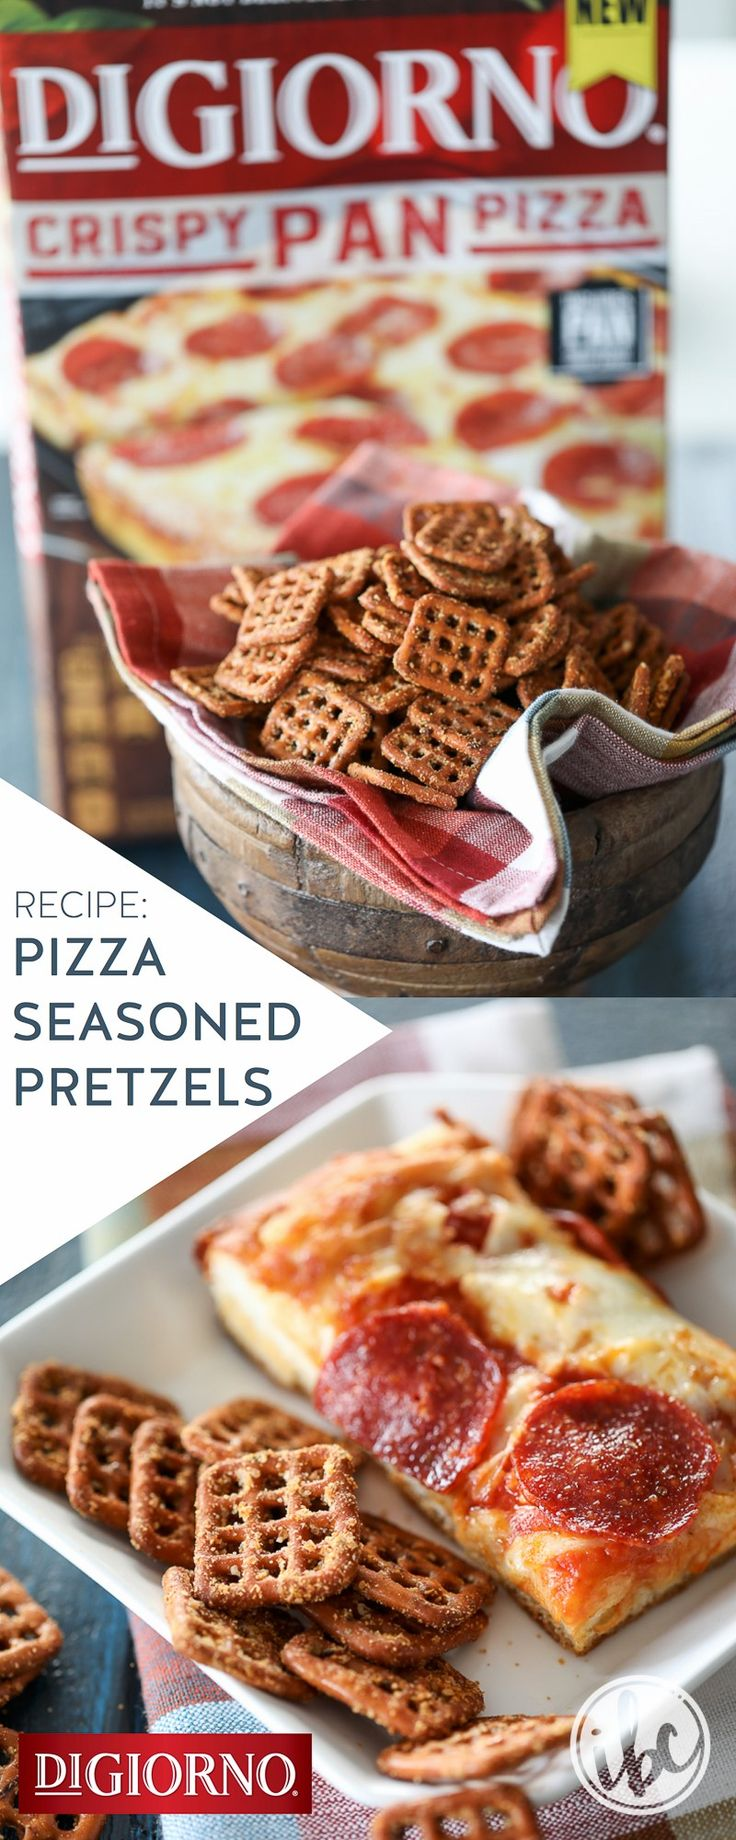 Check out this seasoned pretzel recipe from our partner, Michael Wurm Jr. | Inspired by Charm, inspired by fresh-baked DiGiorno Crispy Pan Pizza – and the perfect complement to any party menu. Ingredients: Pretzels, butter, tomato paste, garlic powder, tomato basil garlic seasoning blend, parmesan cheese. 1. Preheat oven to 275˚F 2. Whisk butter, tomato paste & seasonings. 3. Drizzle pretzels with butter mix. 4. Top with cheese. 5. Bake for 25 minutes. 6. Remove from oven; cool before…